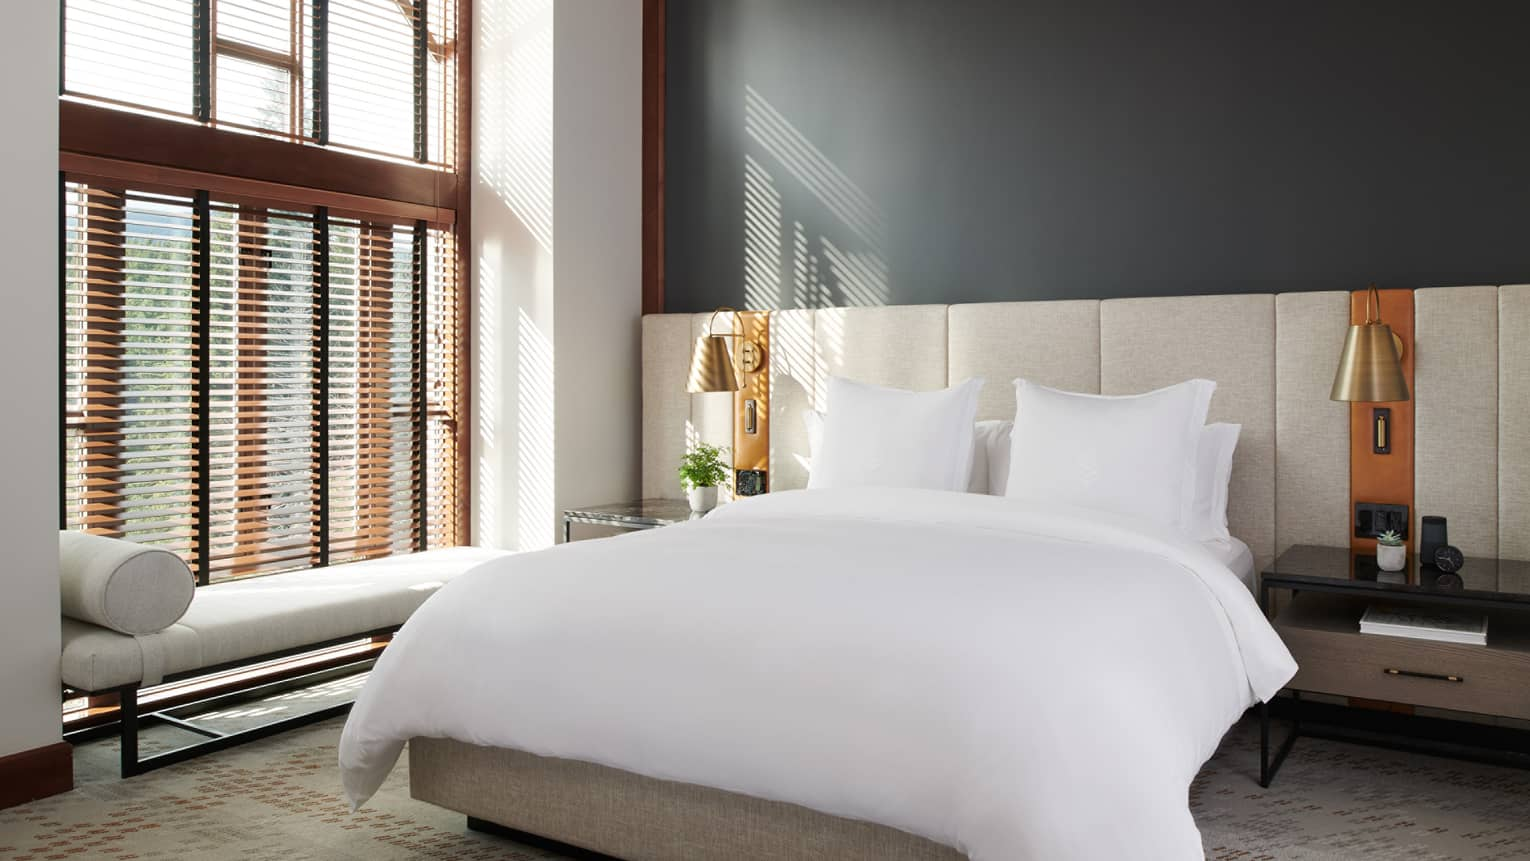 High-ceilinged bedroom with a wall of windows, a queen bed and a tufted wall headboard